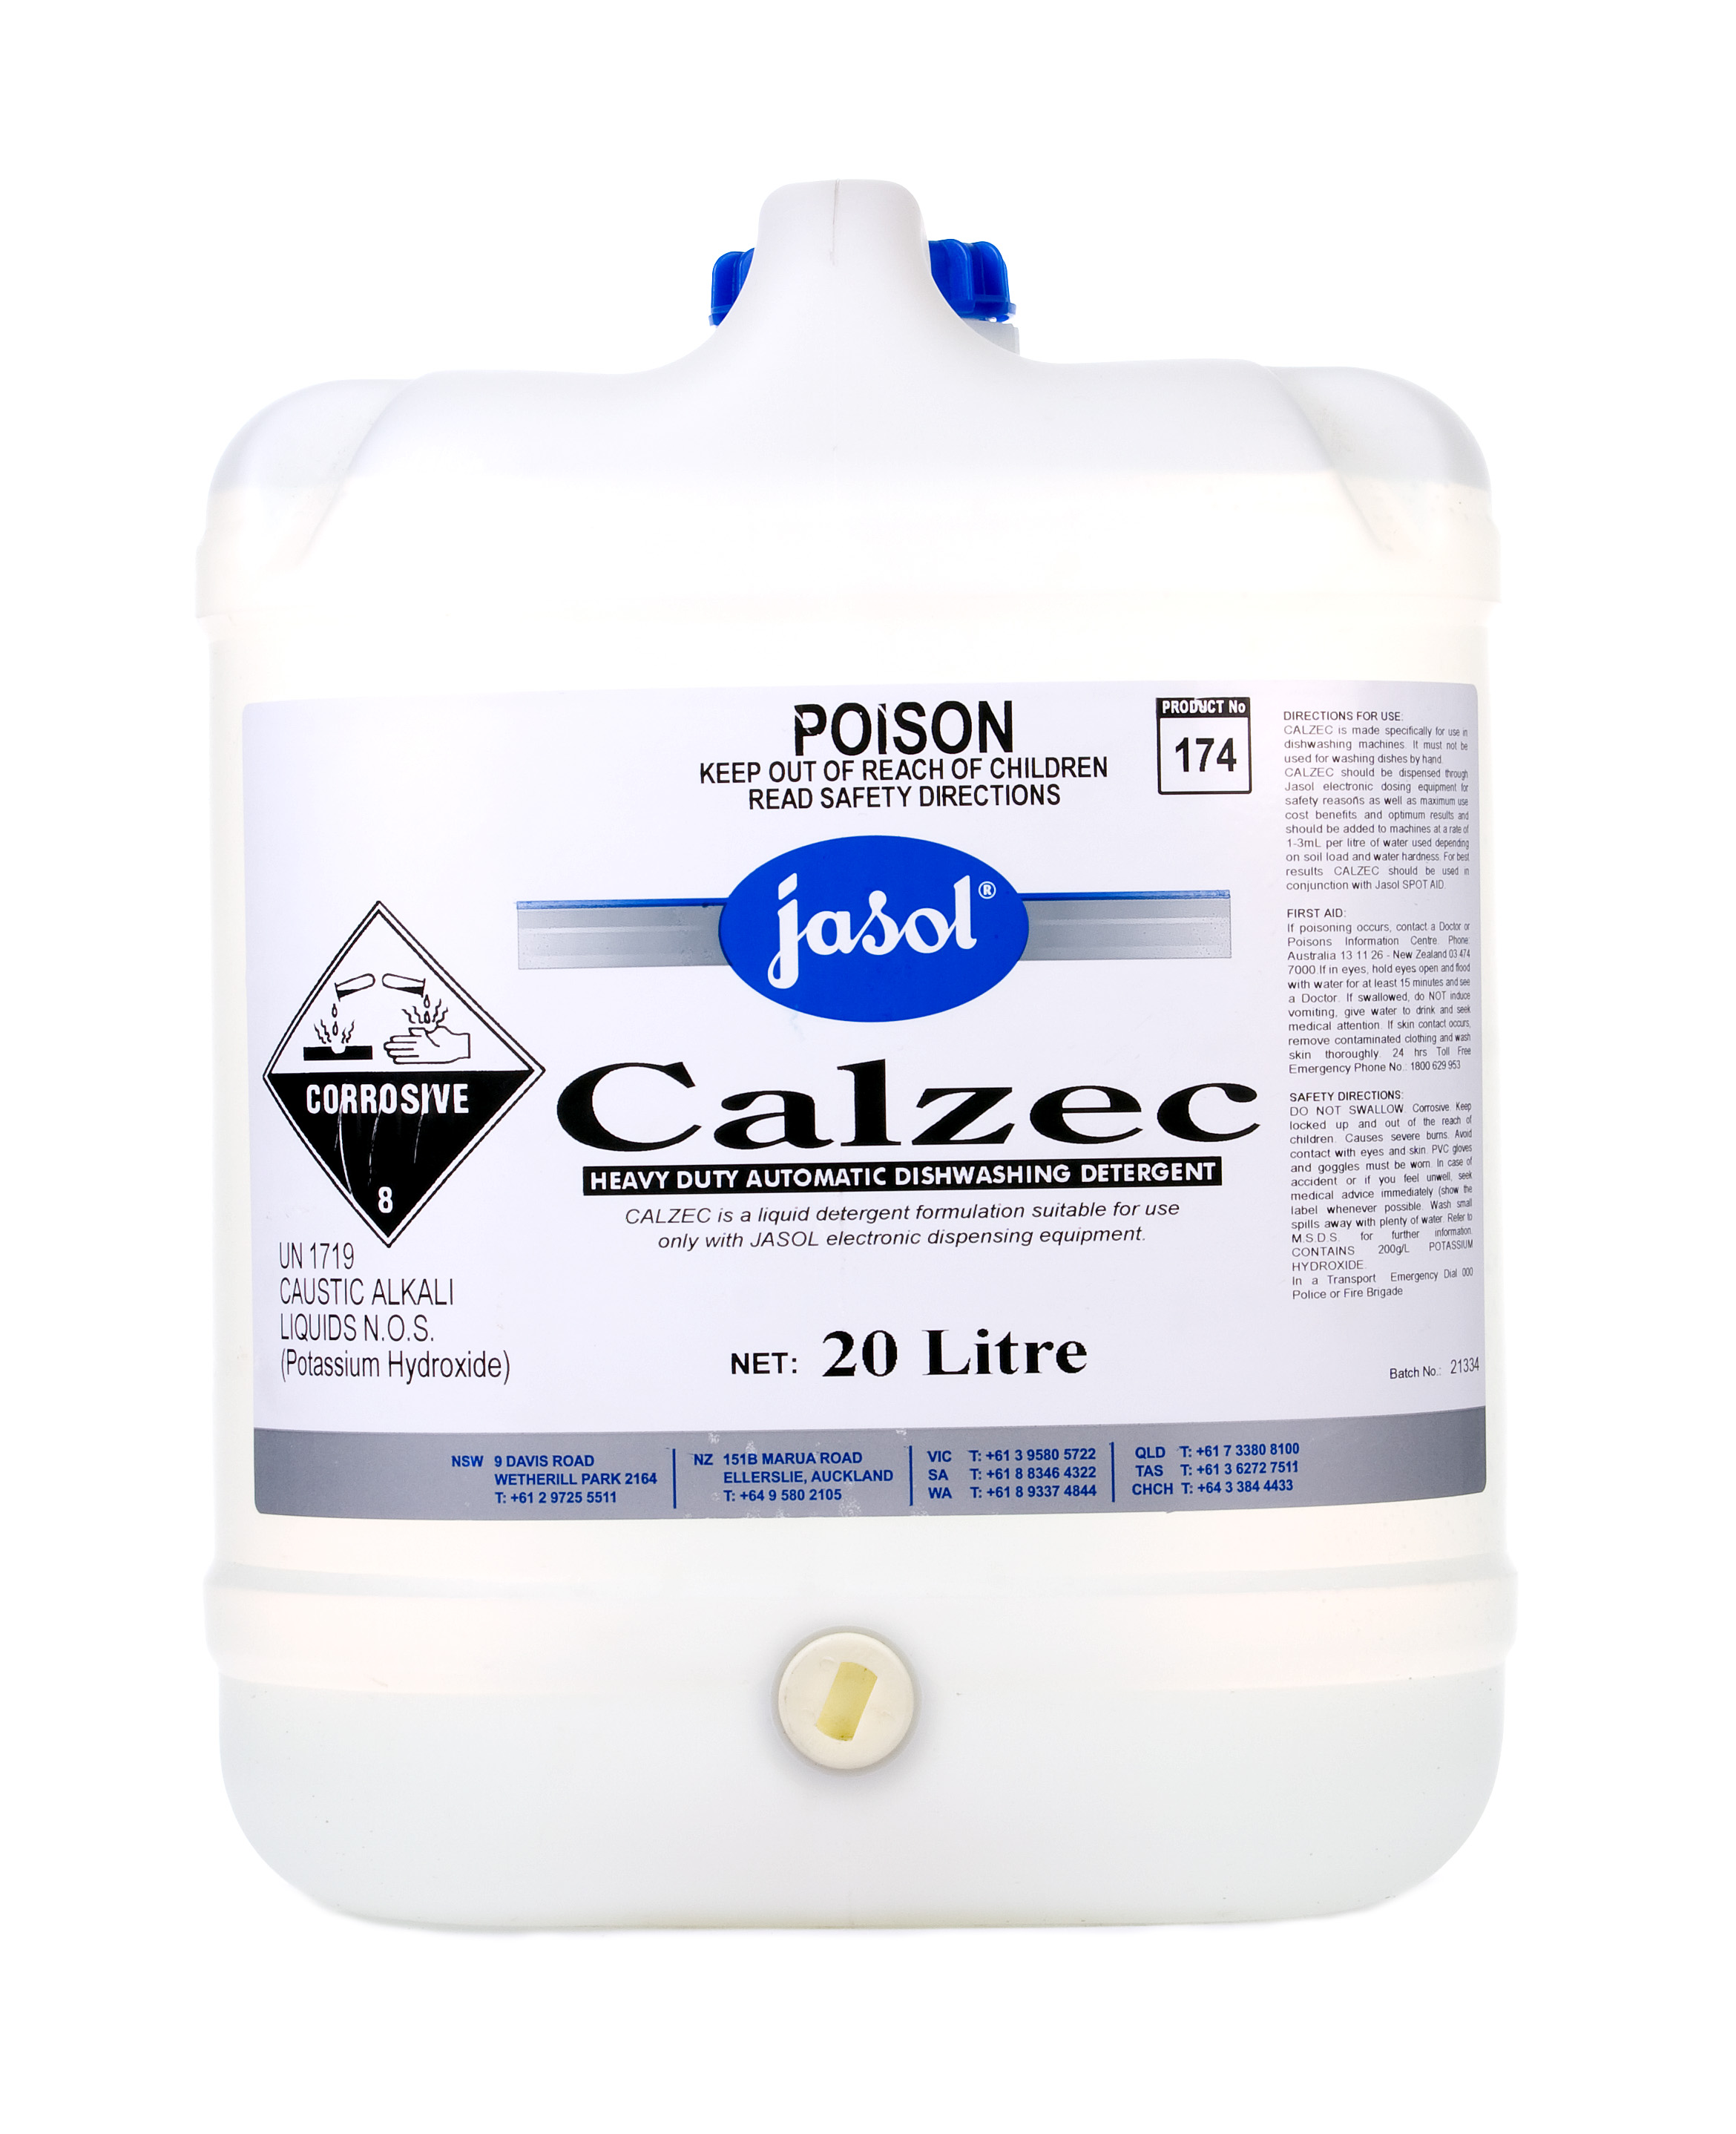 Calzec Plus Machine Detergent